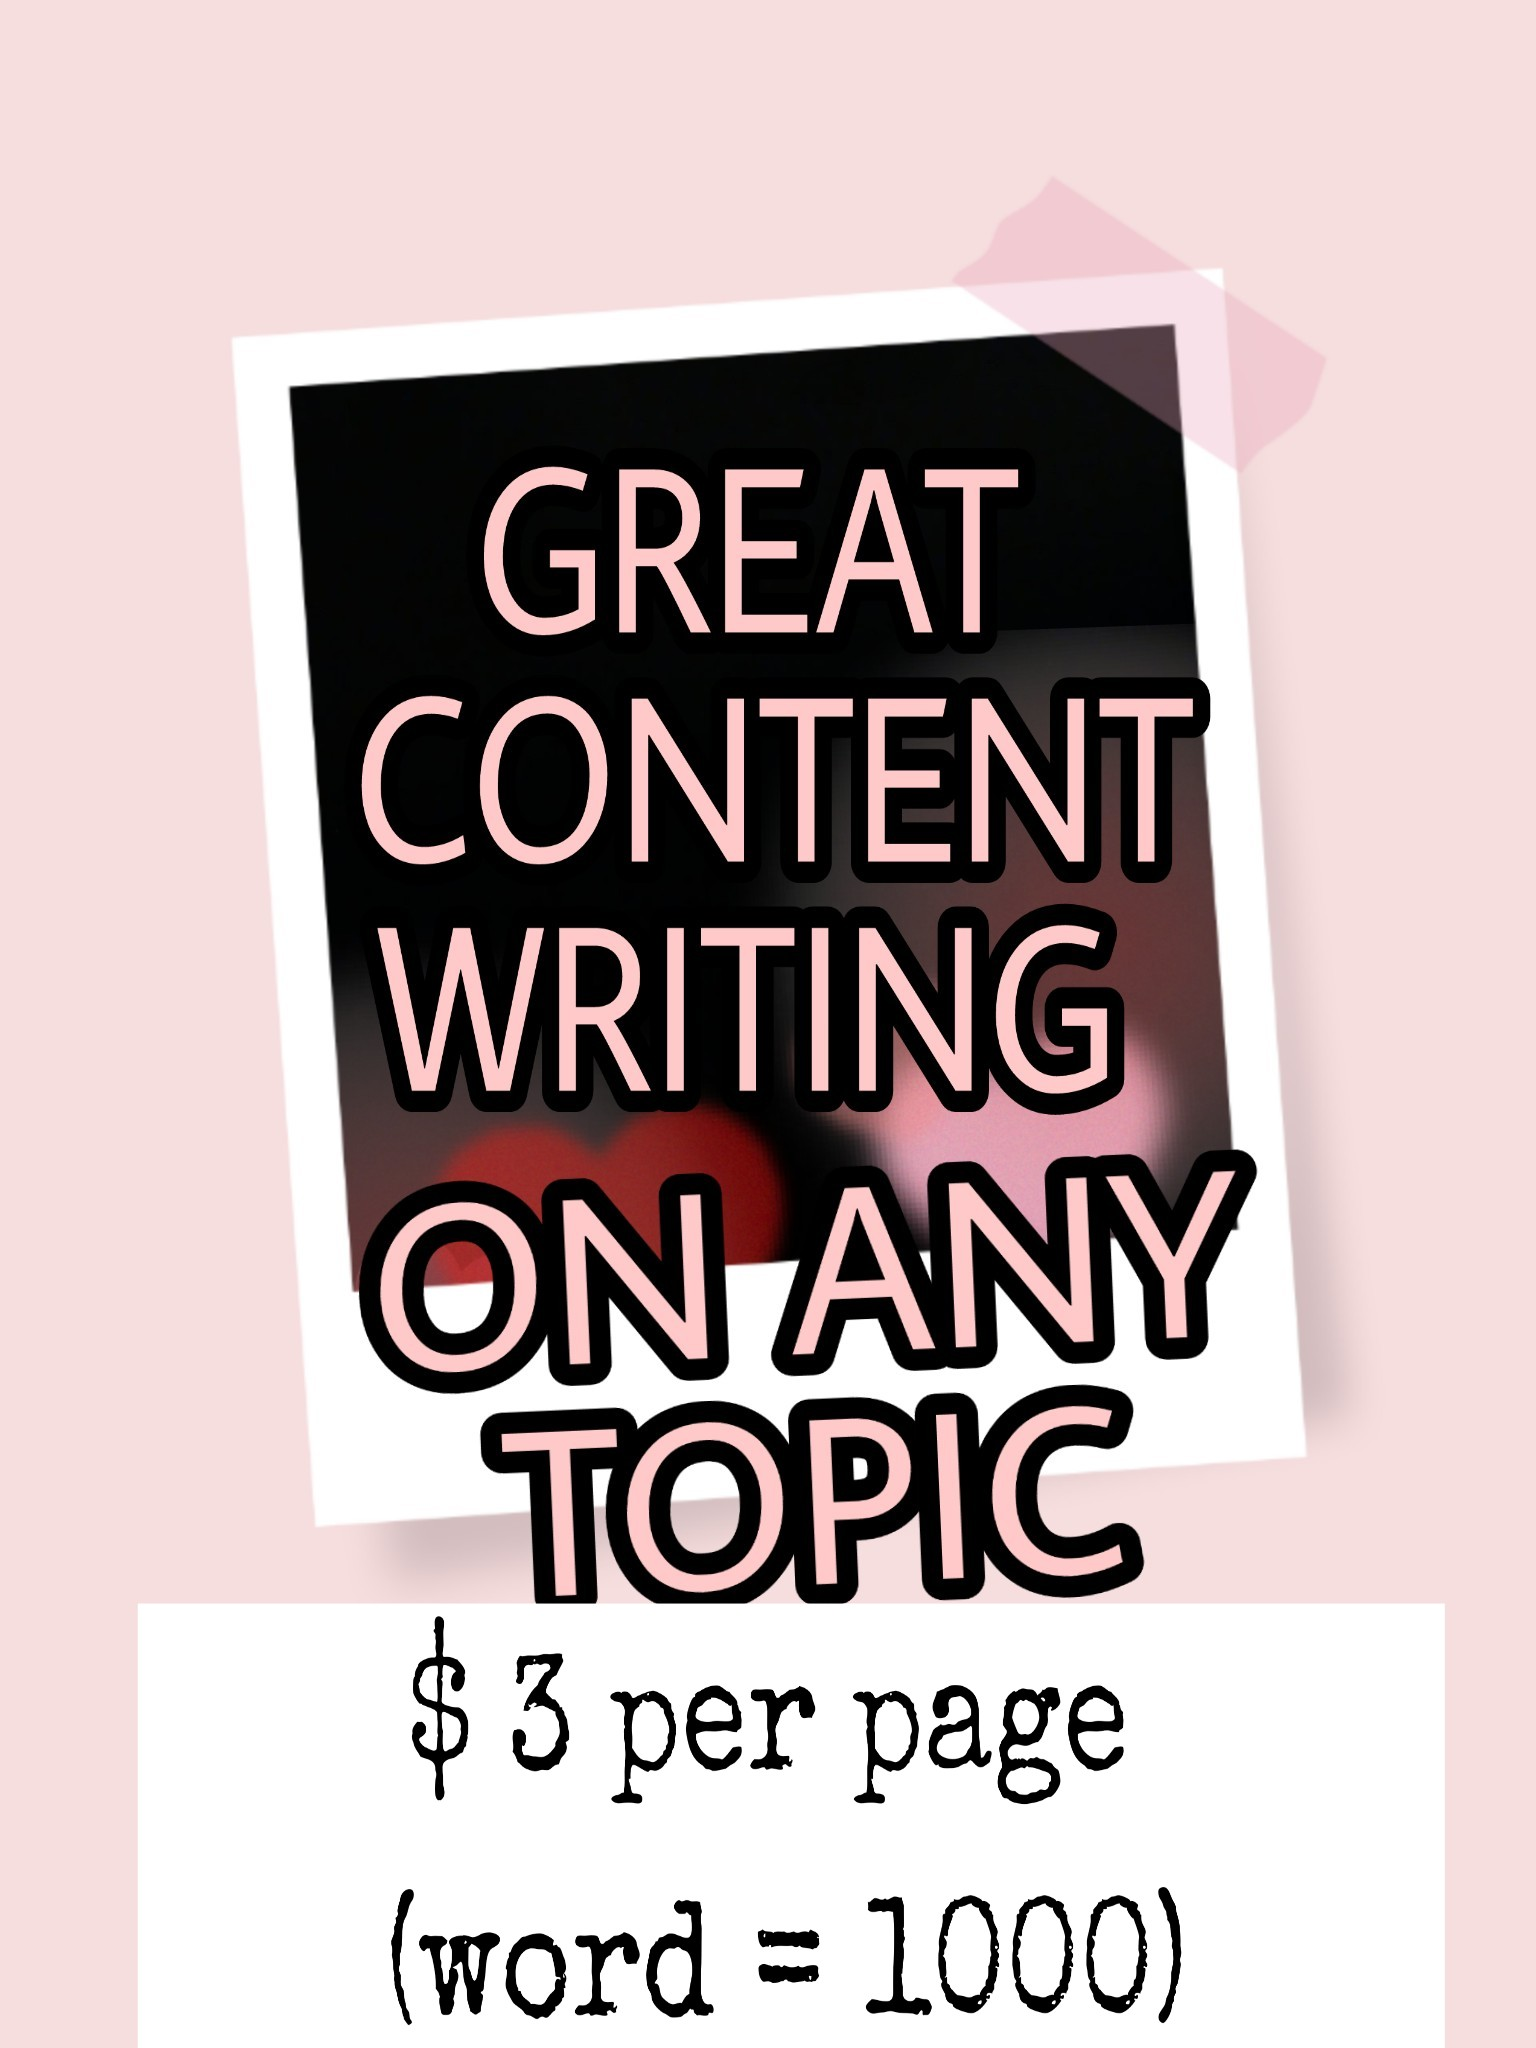 Great contents I write on any topics which you give.